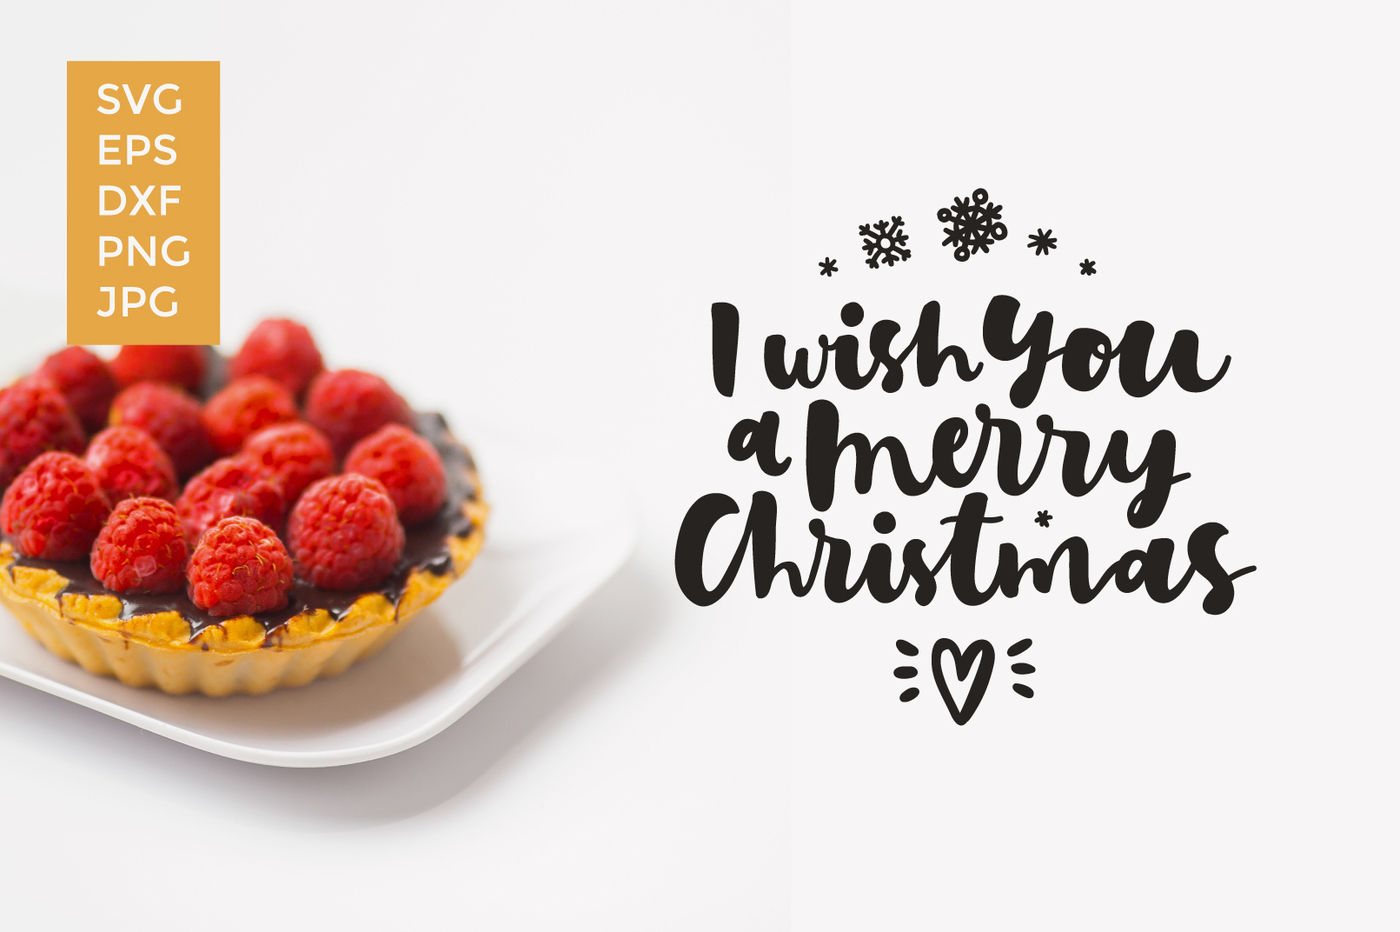 Wish you a Merry Christmas vector cut files By Zira Zulu